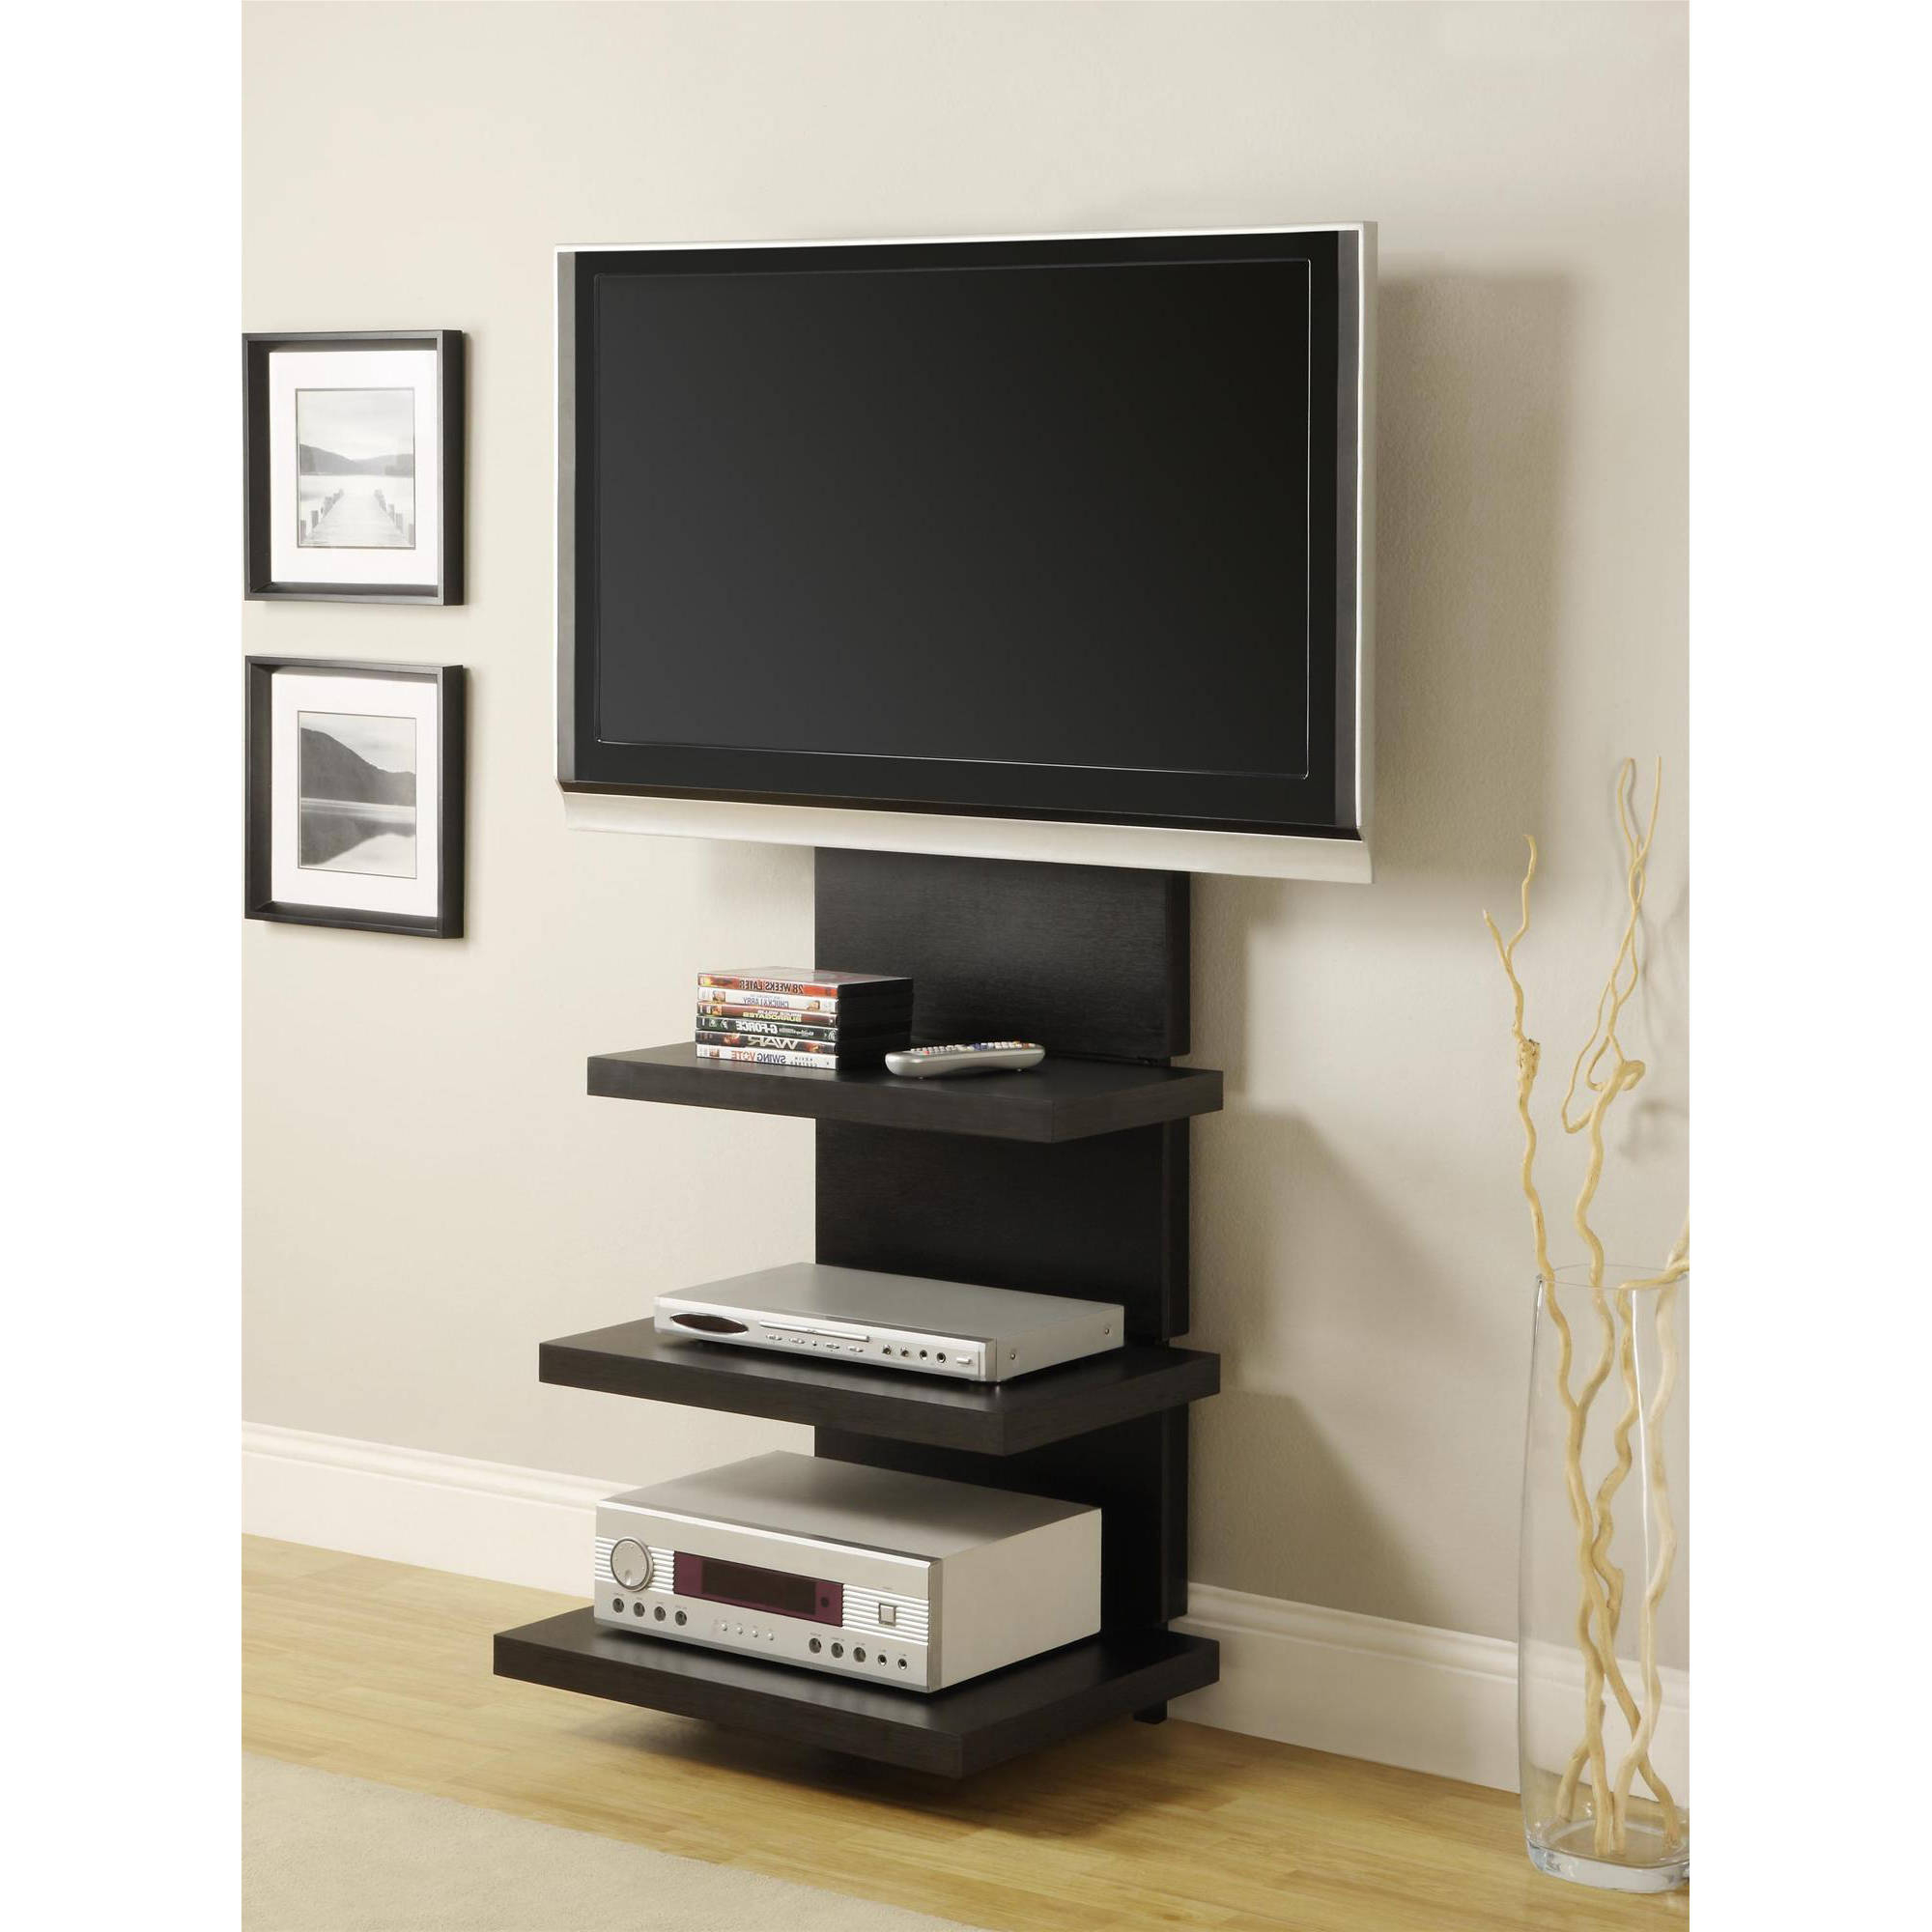 "Famous Shelves For Tvs On The Wall In Altra Wall Mount Tv Stand With 3 Shelves, For Tvs Up To 60"" (Gallery 5 of 20)"